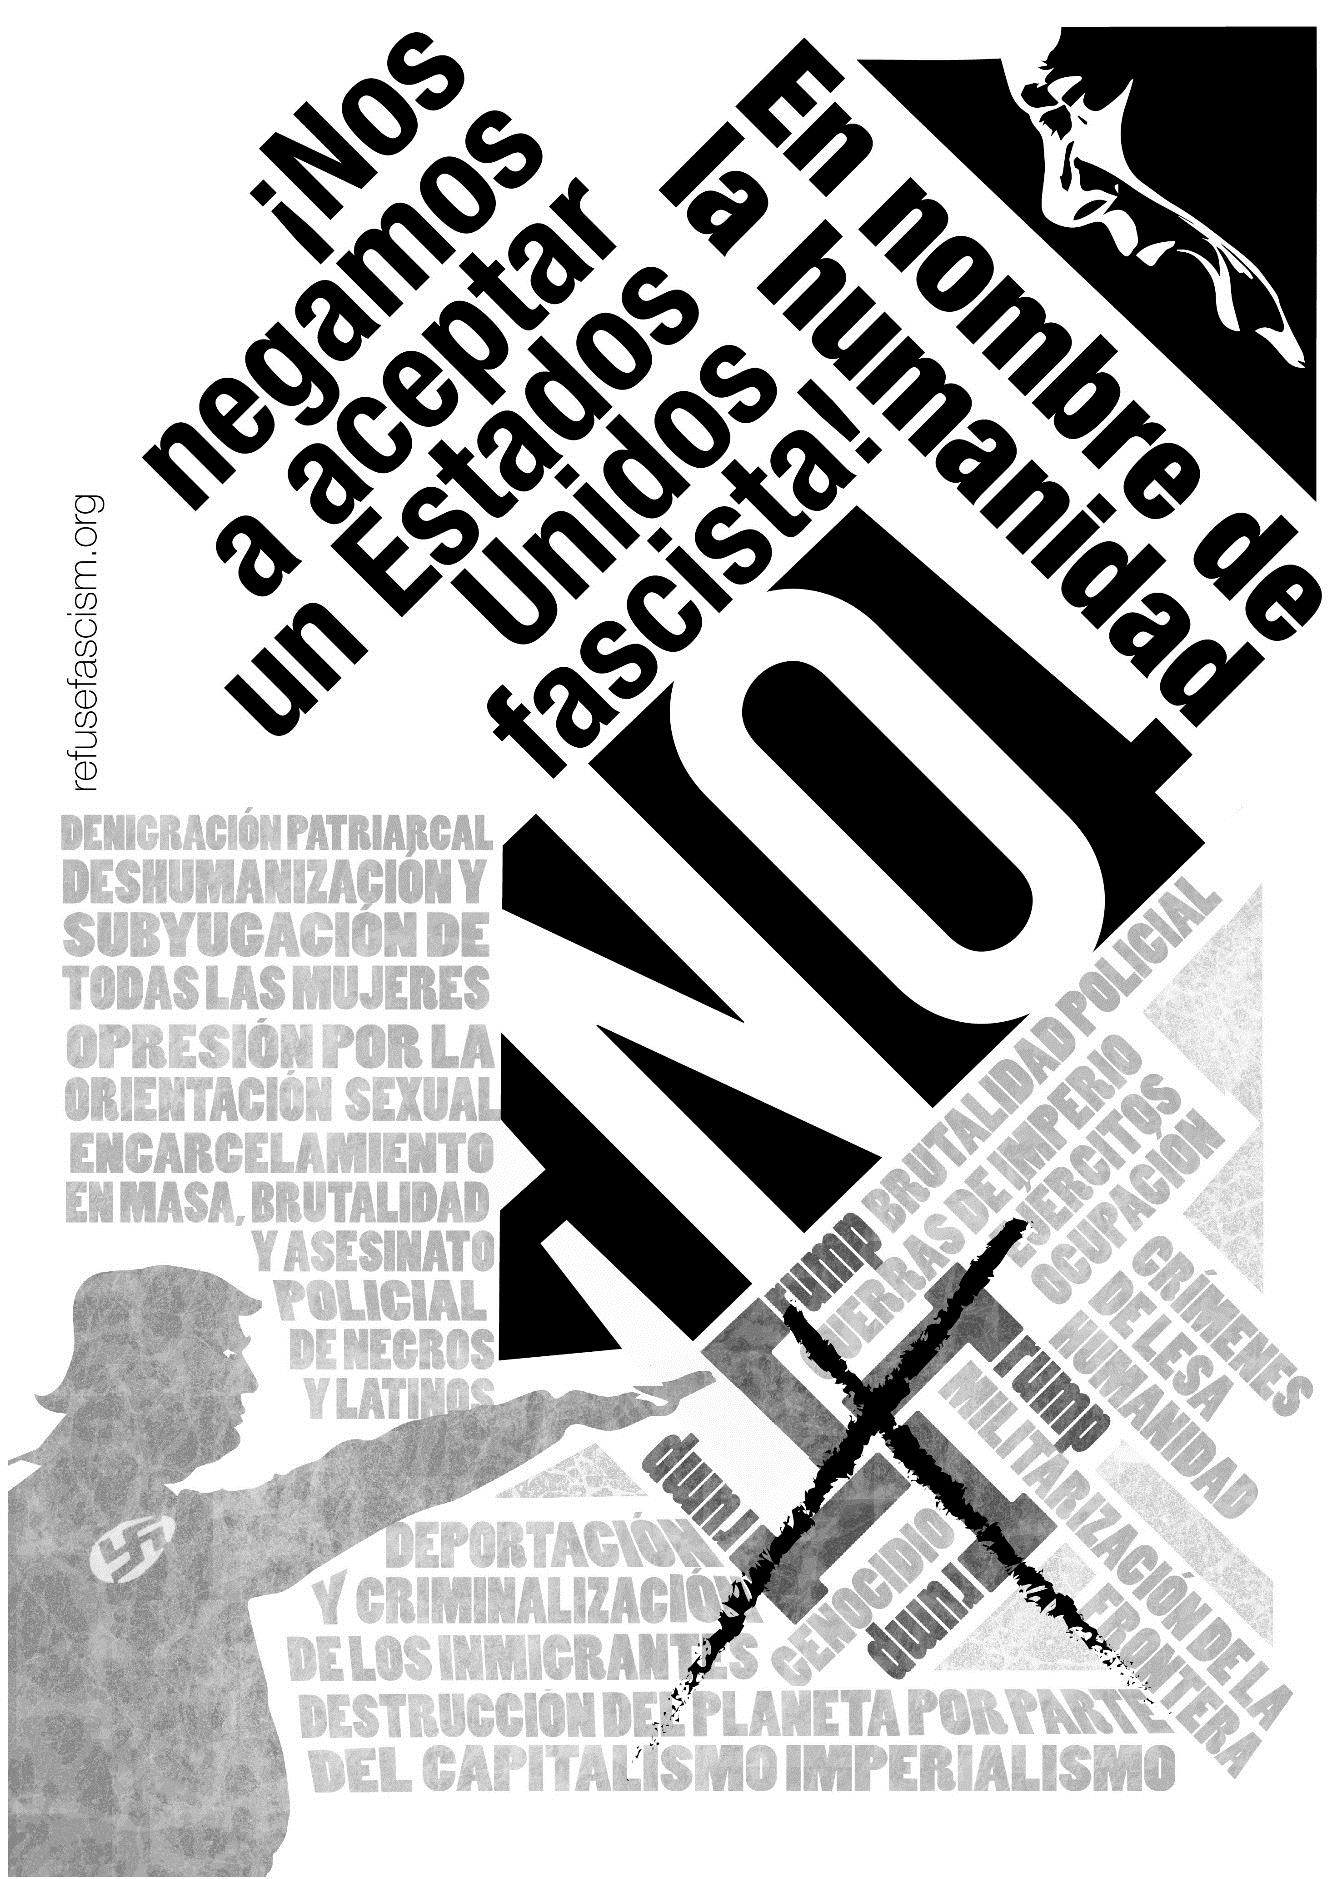 Graphic image from Grupo Comunista Revolucionario, Colombia